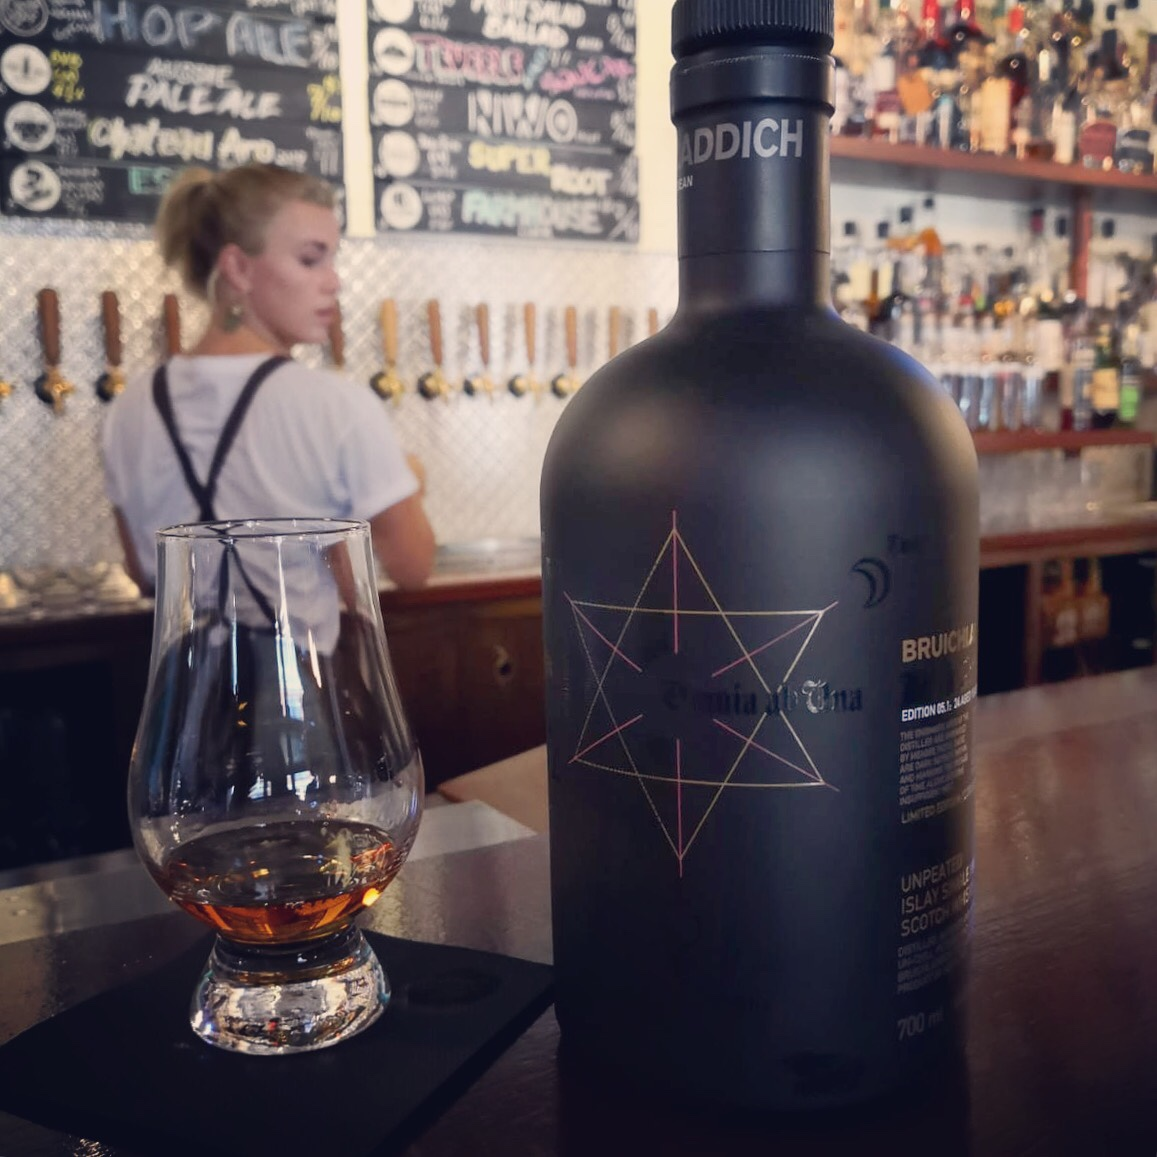 Dram Review: Bruichladdich Black Arts 1992 Edition 05.1 24 Aged Years